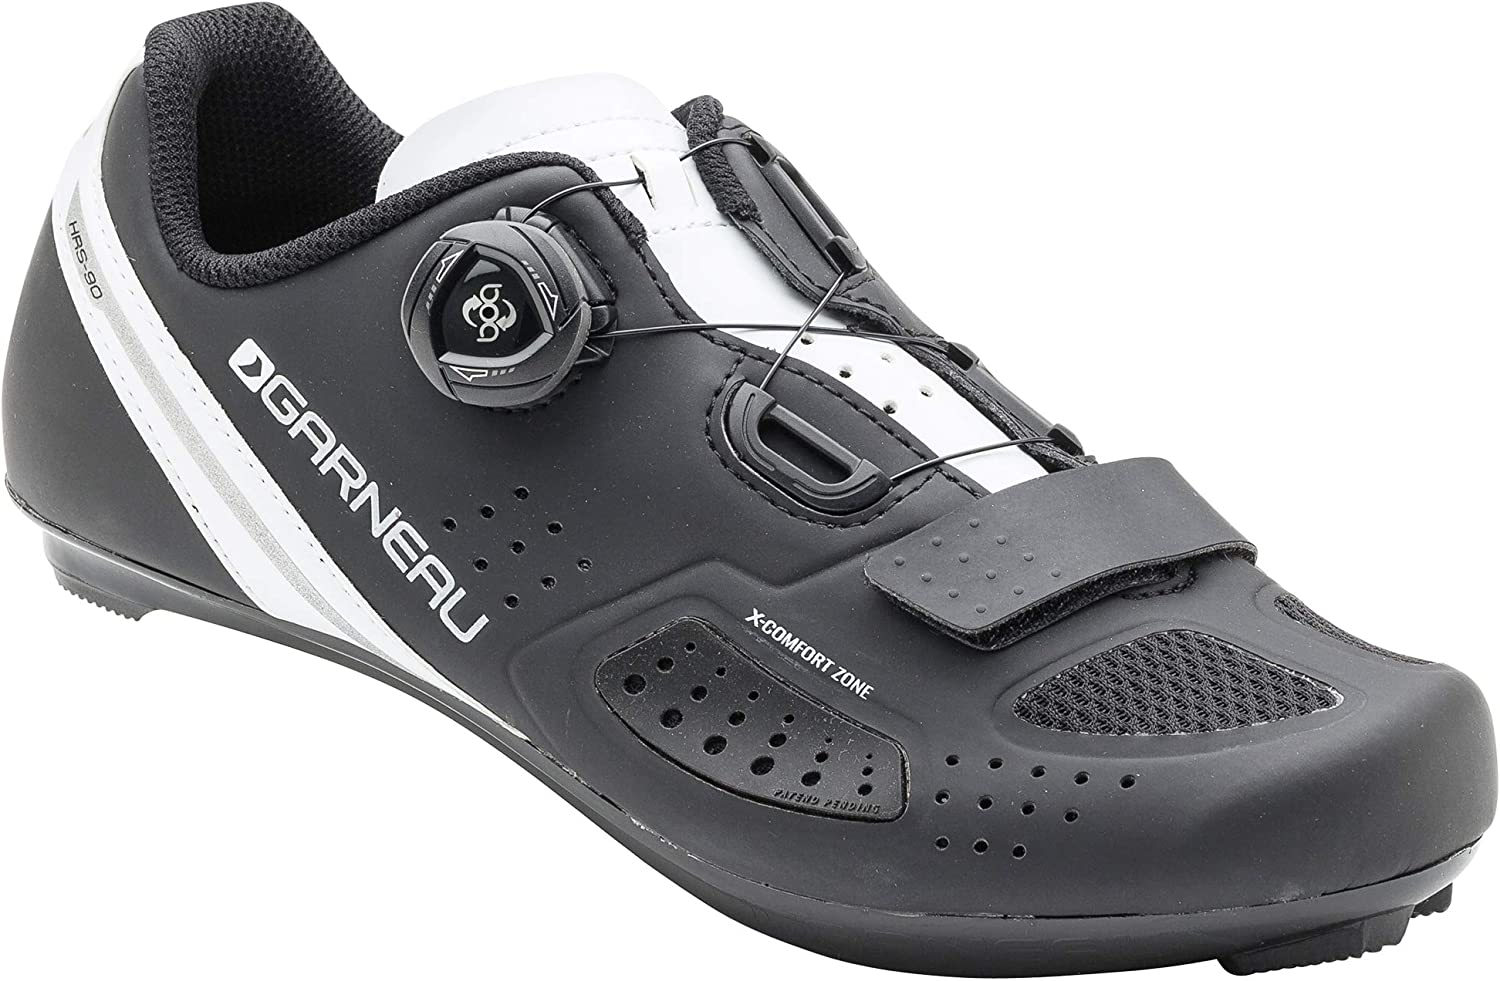 Louis Garneau Womens Ruby 2 Road Bike Clip-in Cycling Shoes for All Road and SPD Pedals